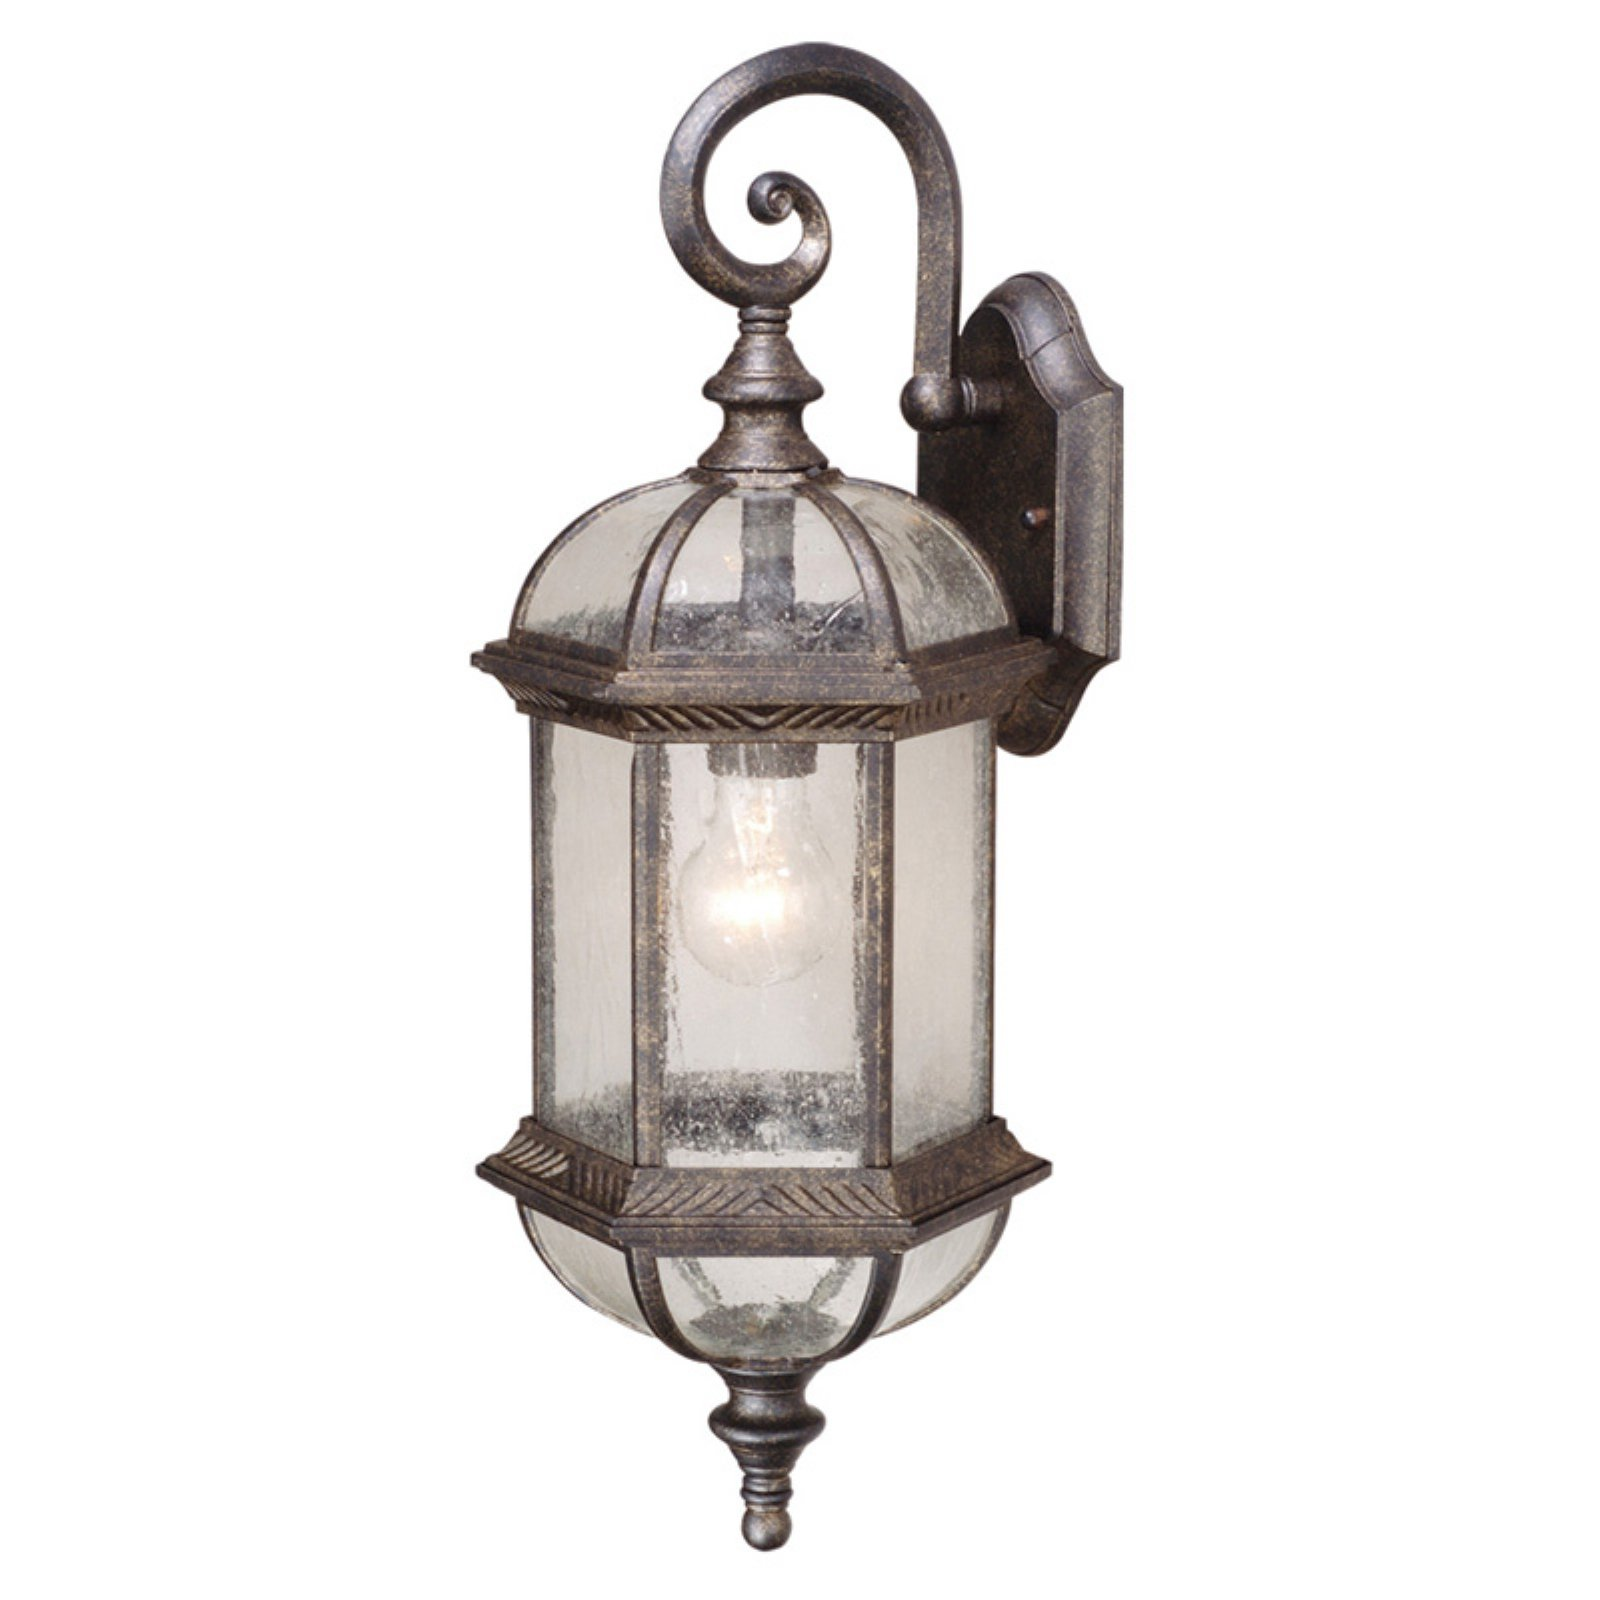 Vaxcel Chateau OW39782 Outdoor Wall Sconce